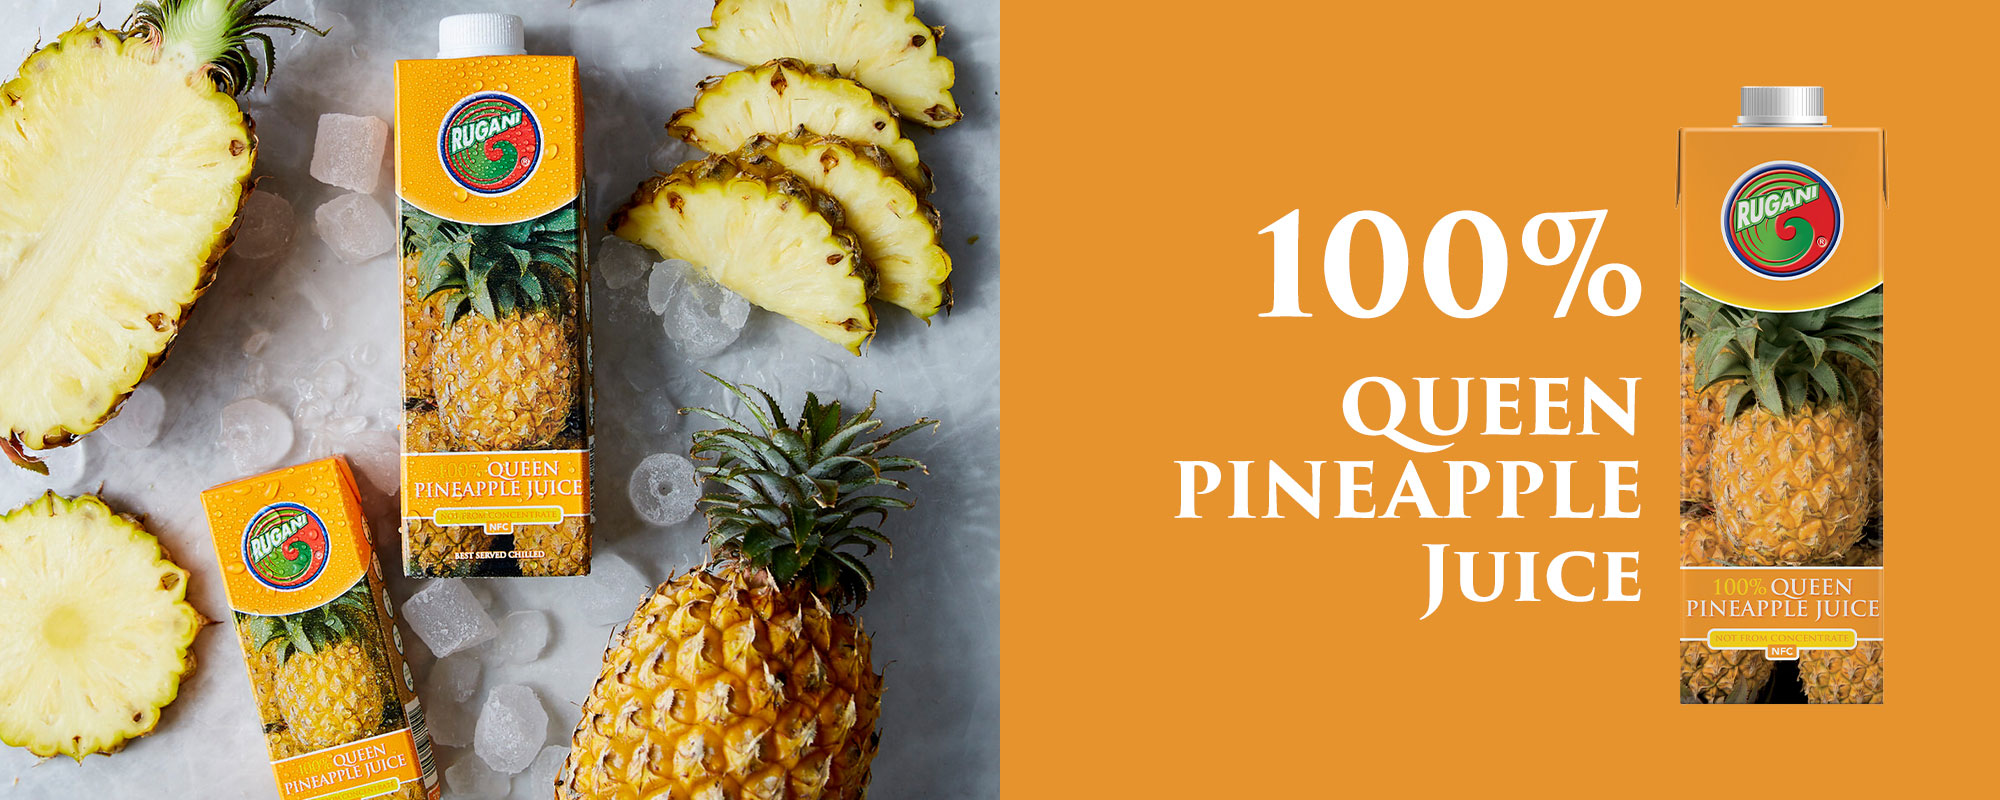 100% Queen pineapple juice